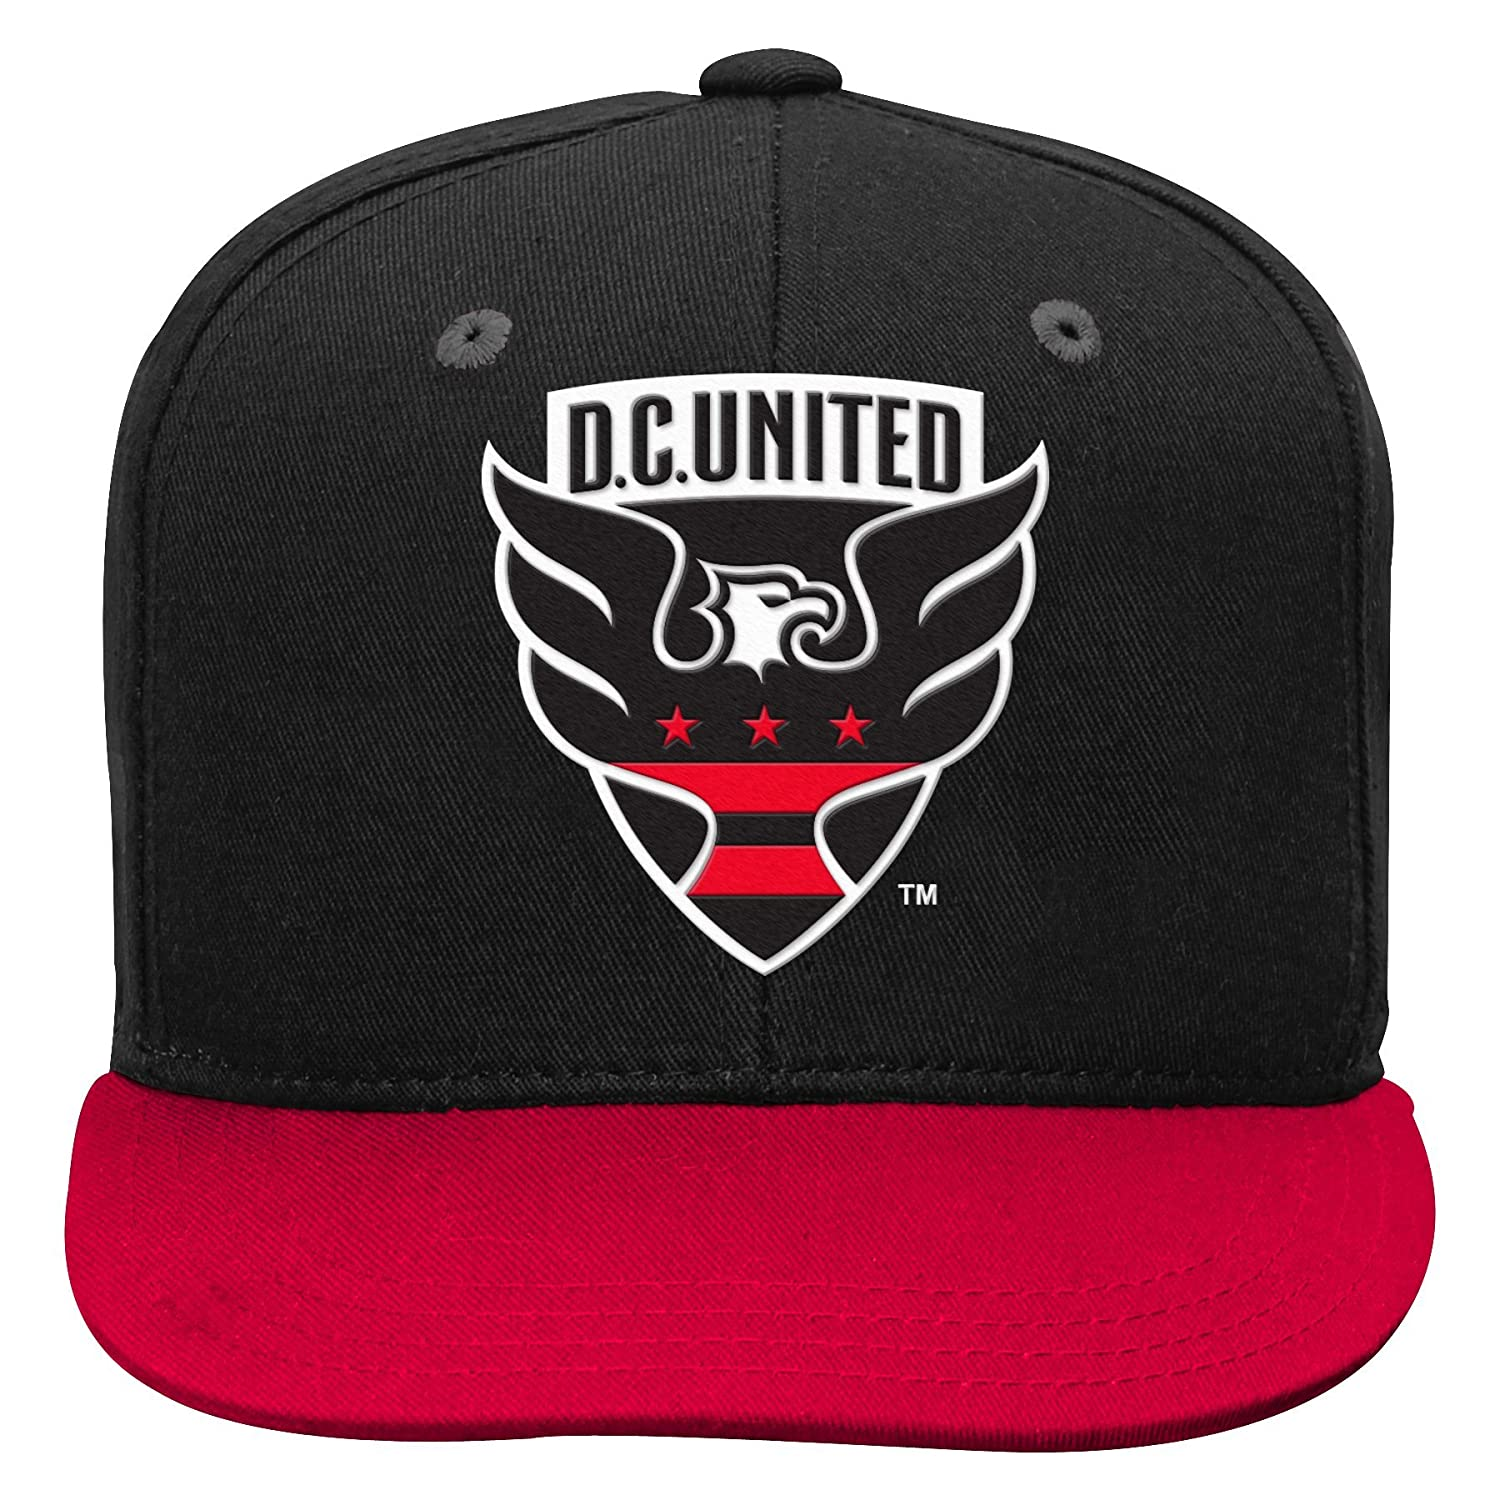 MLS D.C Youth One Size United 4-7 Outerstuff Flat Visor Snapback Team Color